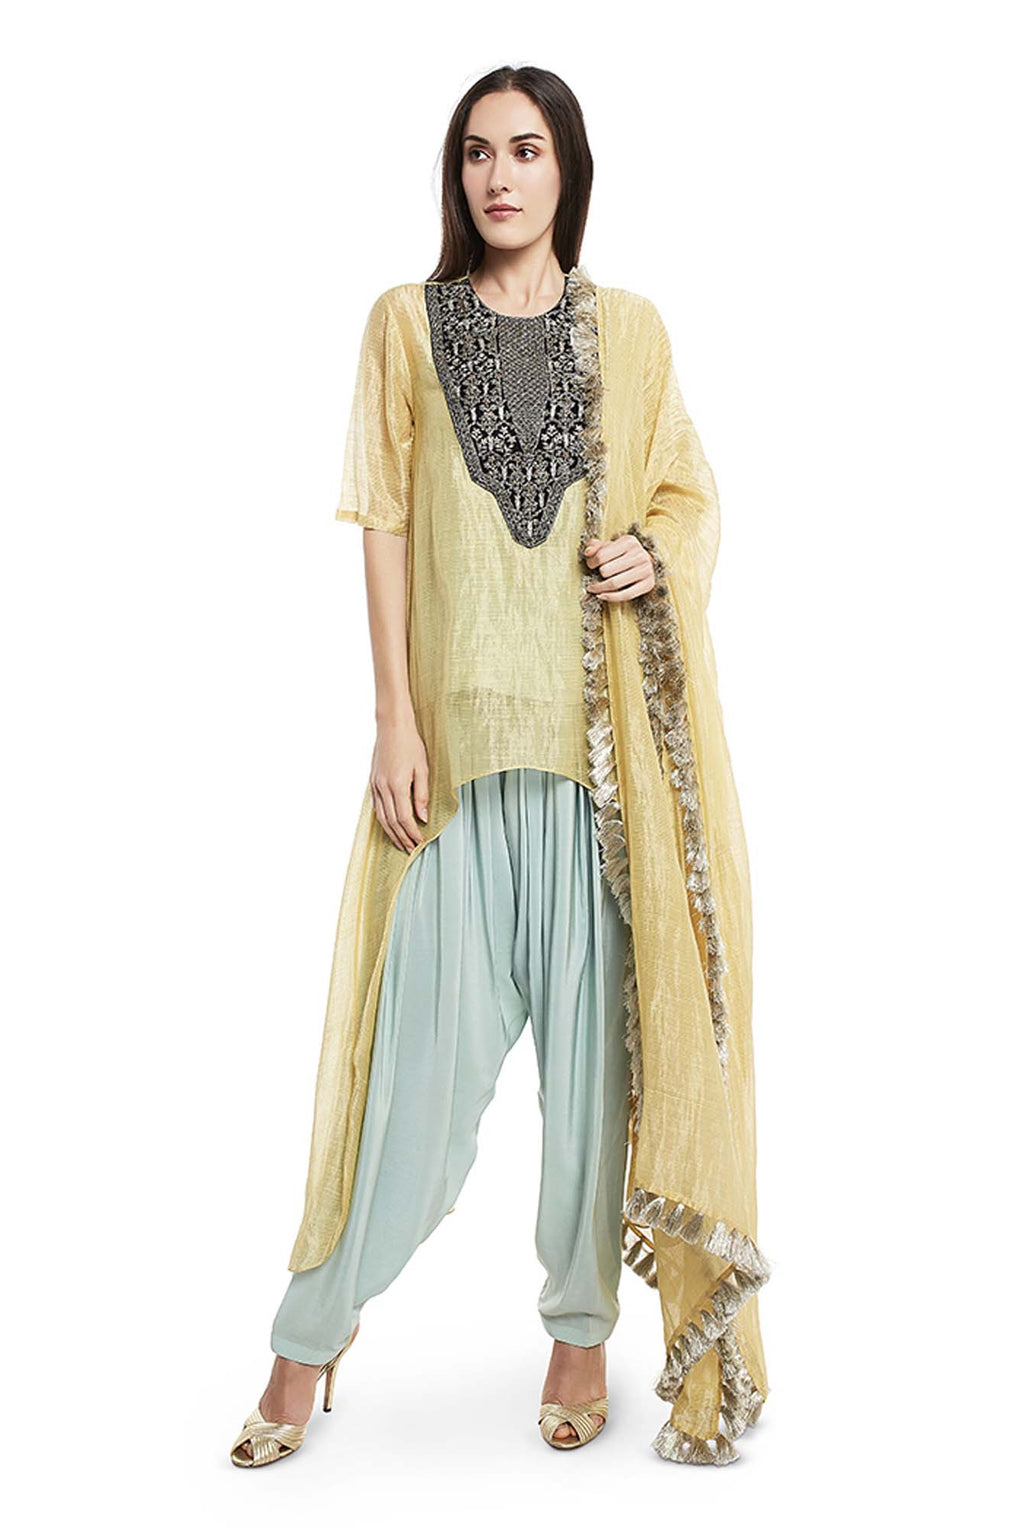 Pale Yellow Colour Chanderi Stripe High-Low Kurta with Dupatta and Aqua Colour Silk Camisole with Salwar - Riviera Closet